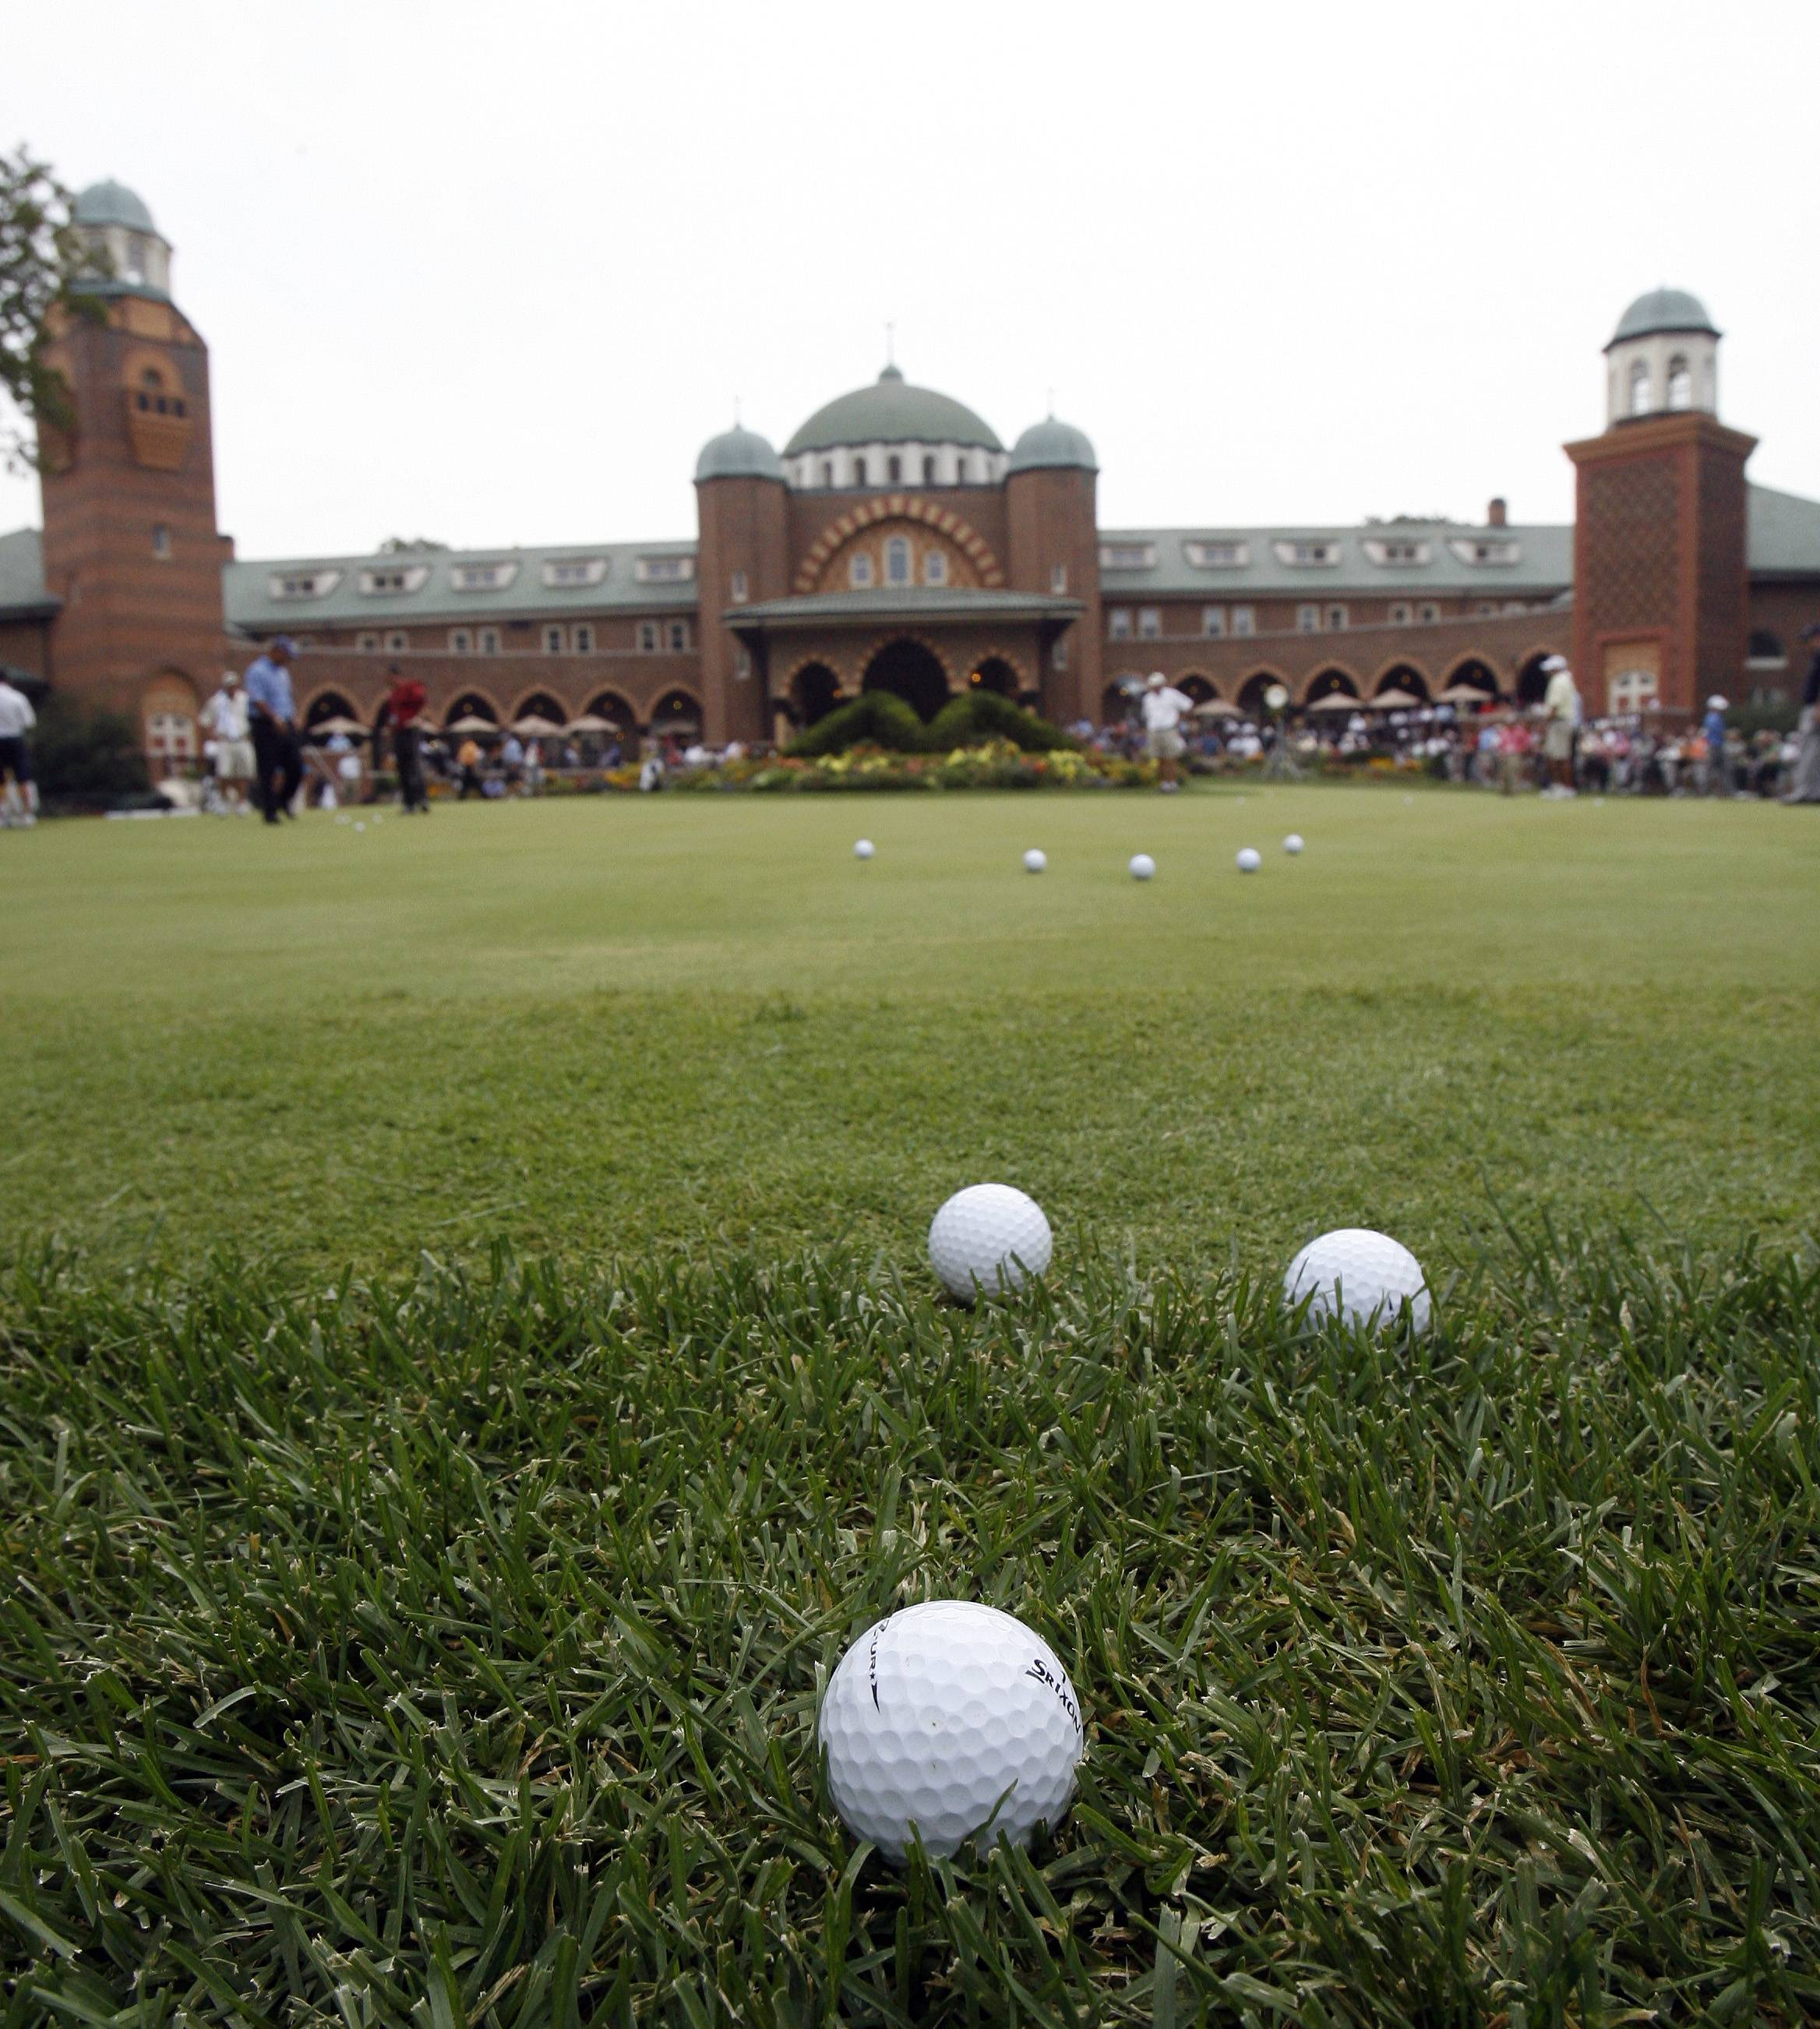 Legislation could close Medinah golf course tax loophole